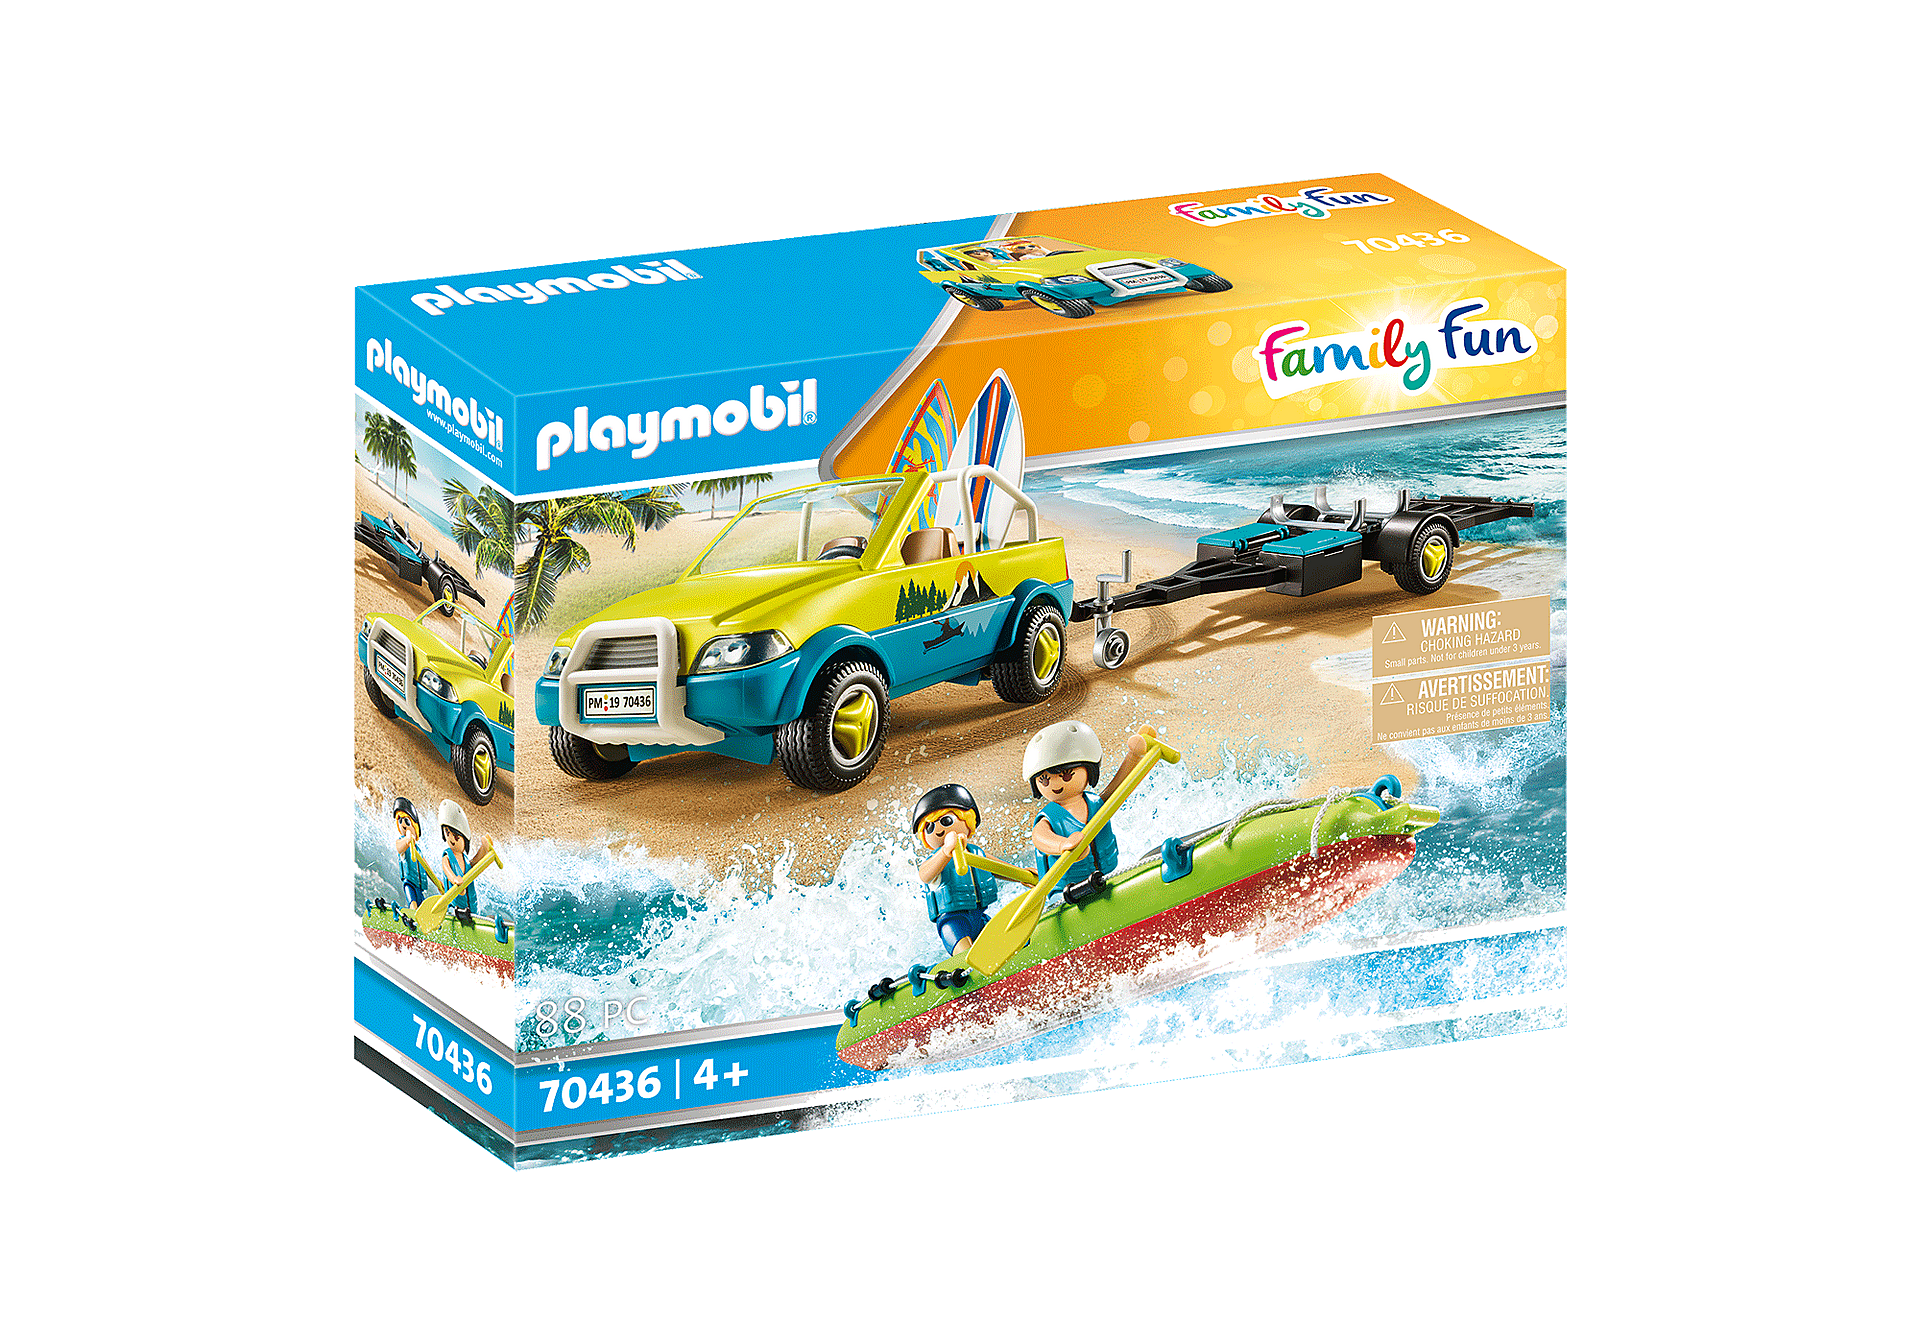 Playmobil - Beach car with Canoe (70436)